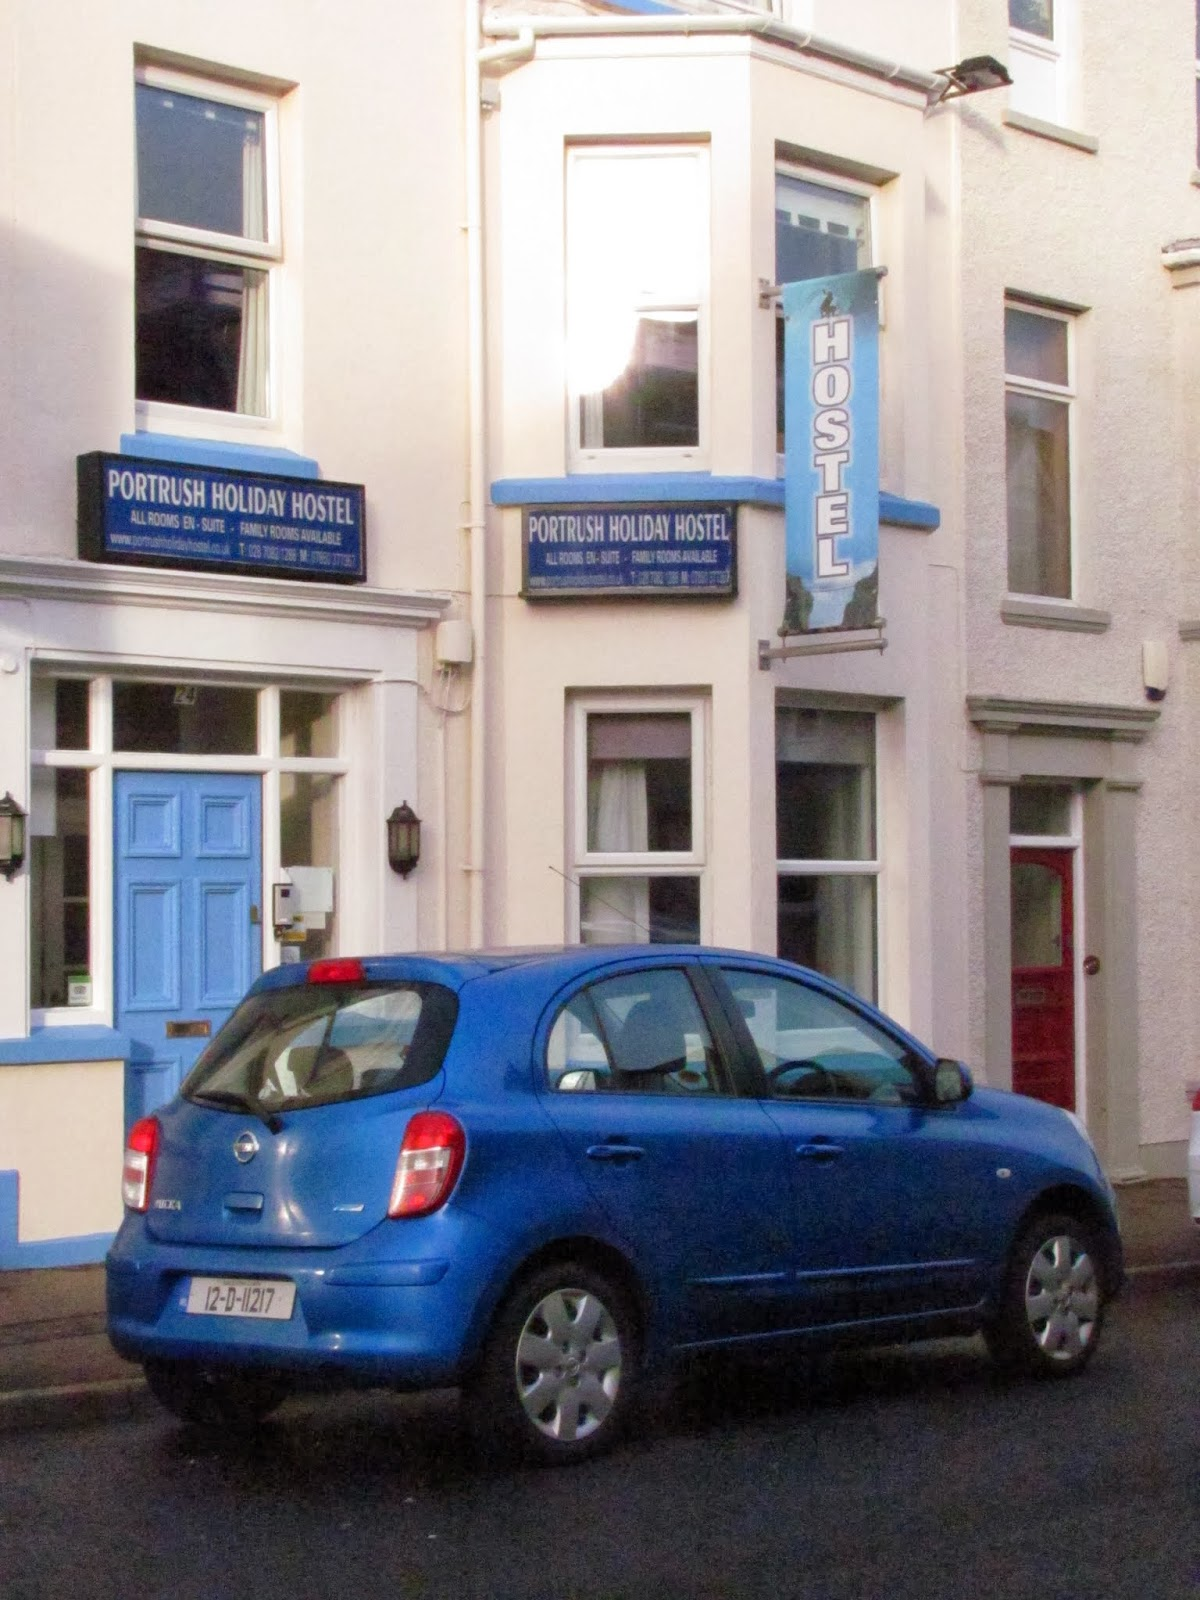 Portrush Holiday Hostel and our rental car in Portrush, Northern Ireland